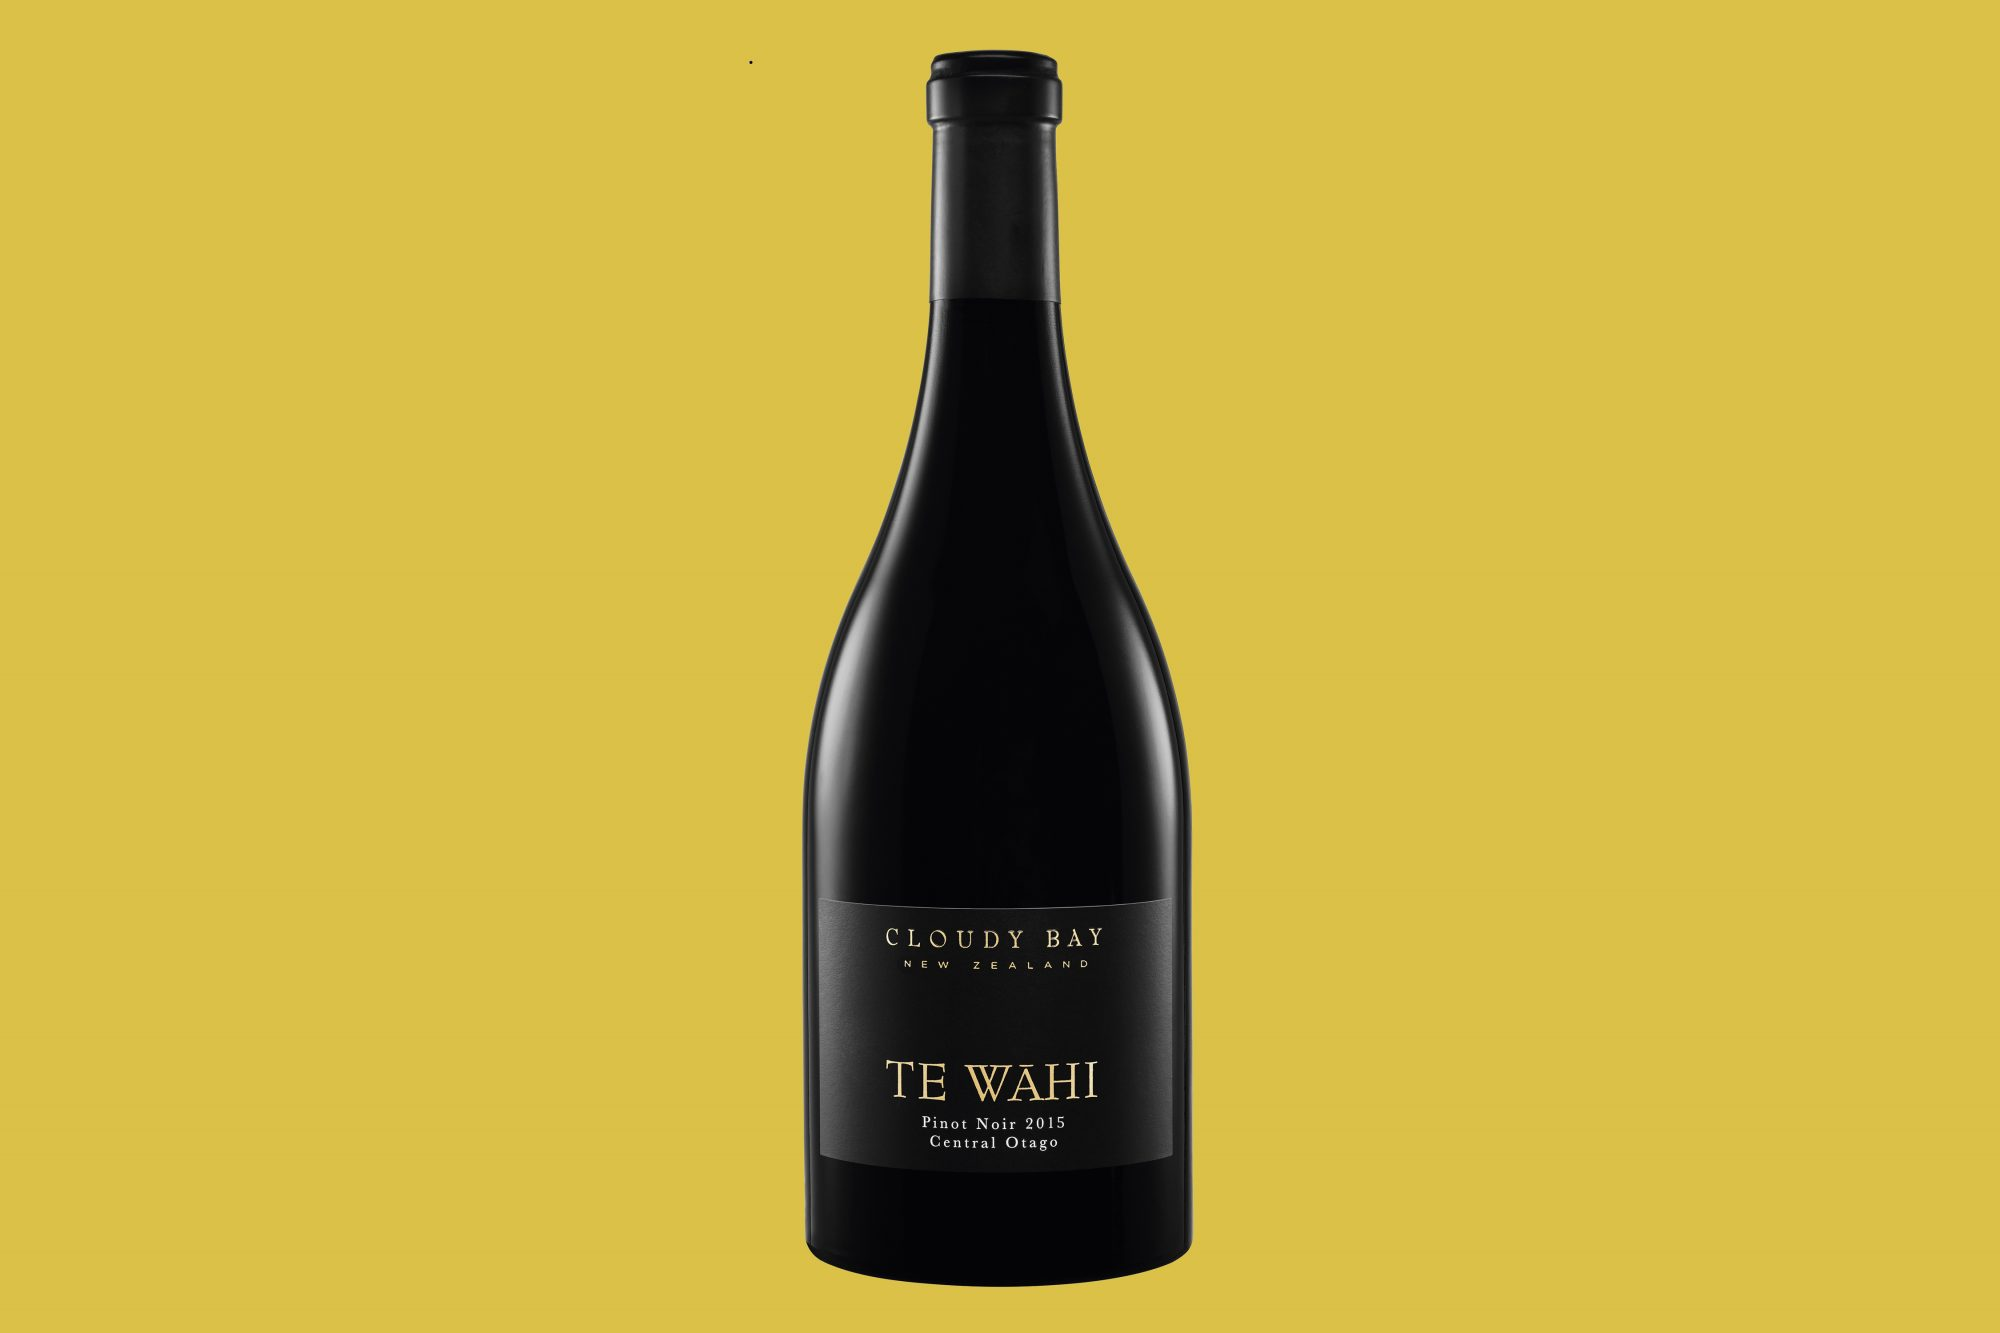 Cloudy Bay Te Wahi Pinot Noir 2015 wine bottle